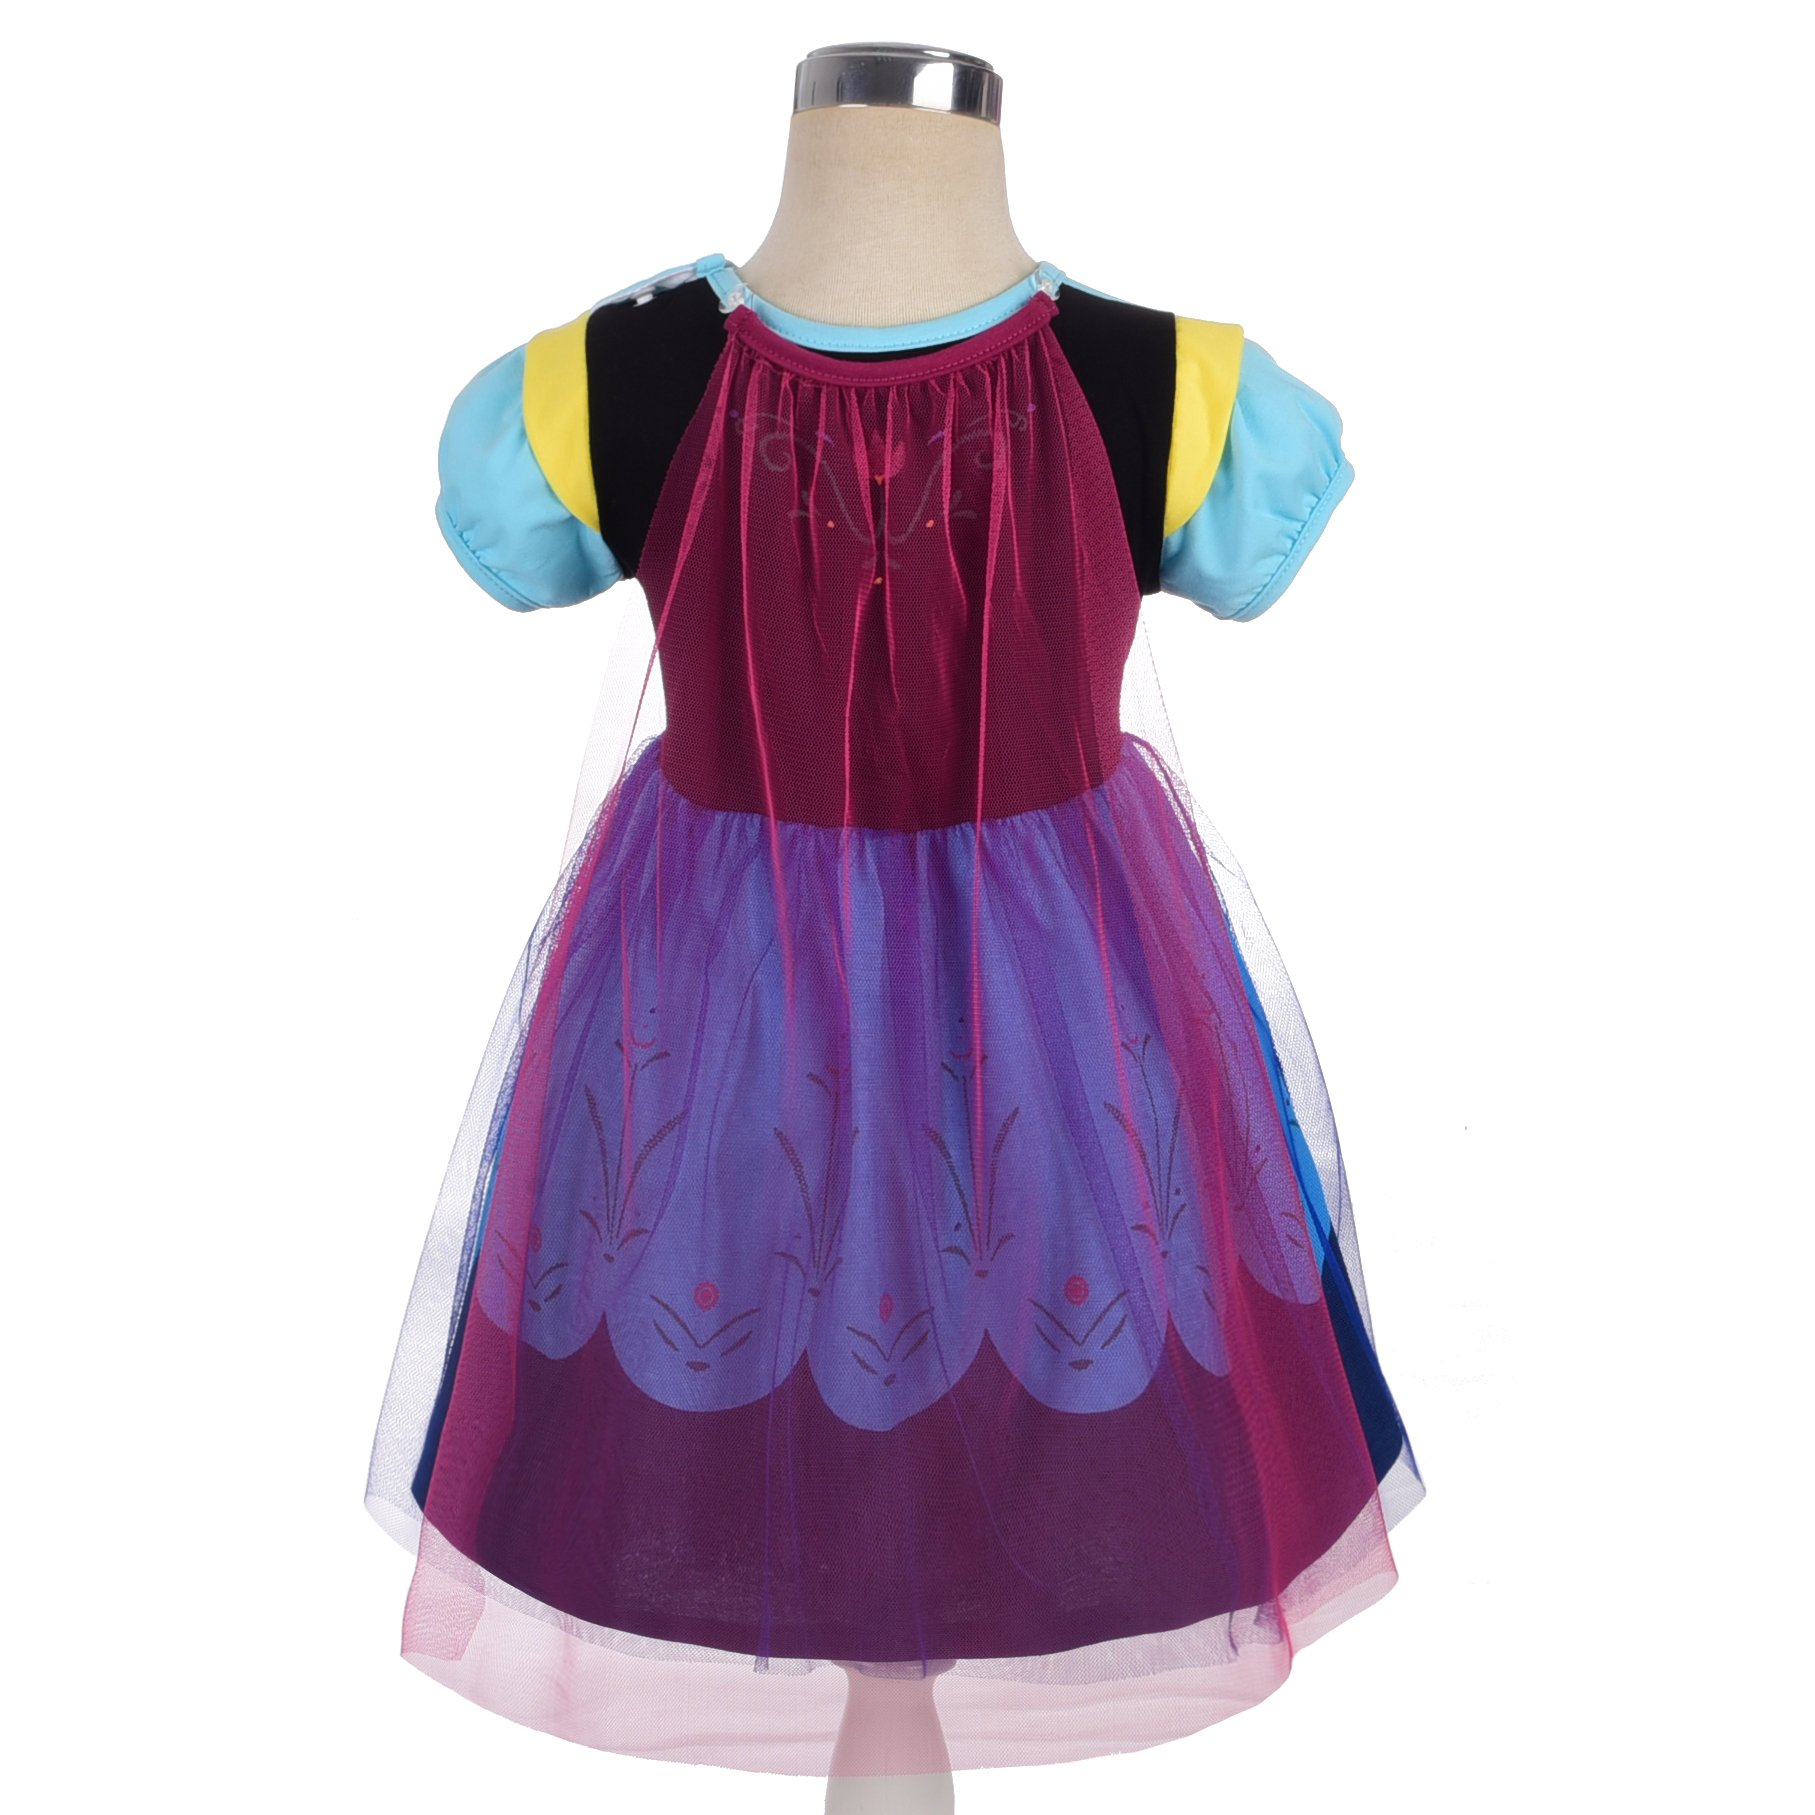 Dressy Daisy Princess Anna Dress for Toddler Girls with Cape Halloween Fancy Party Costume Dress Size 2T by Dressy Daisy (Image #2)